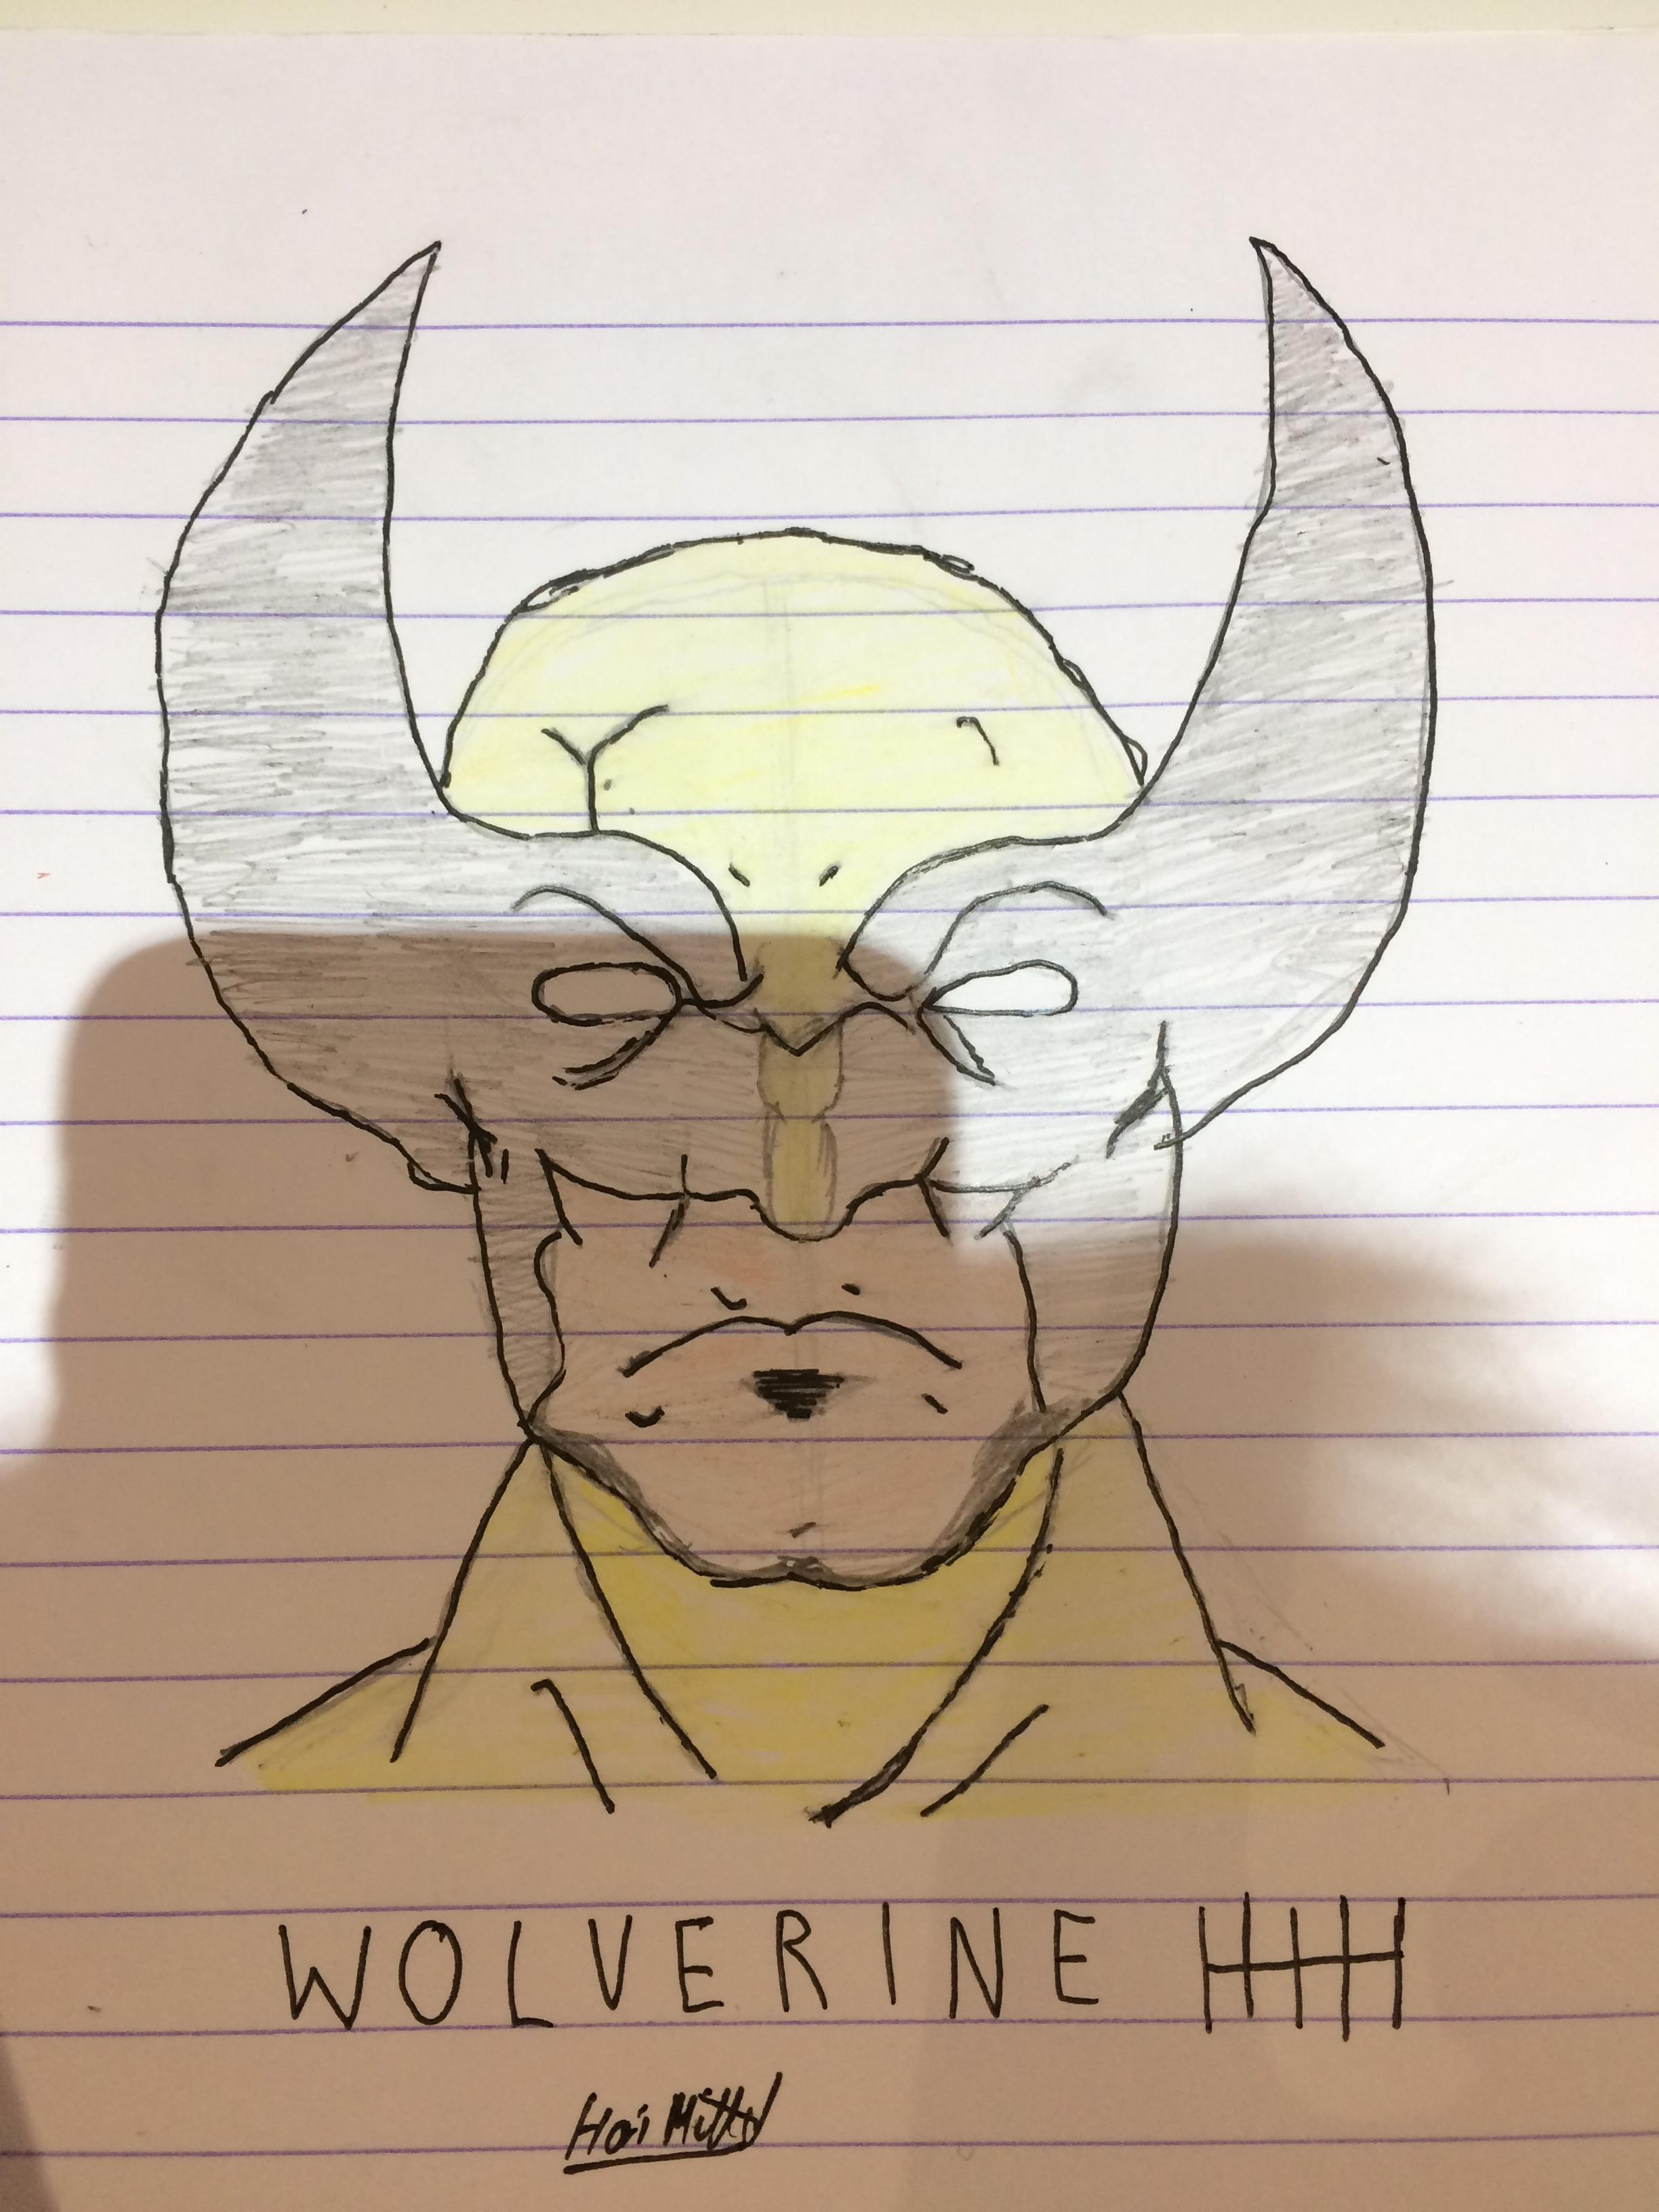 2448x3264 My Wolverine Drawing, I Know It's Not Related To The App, But I